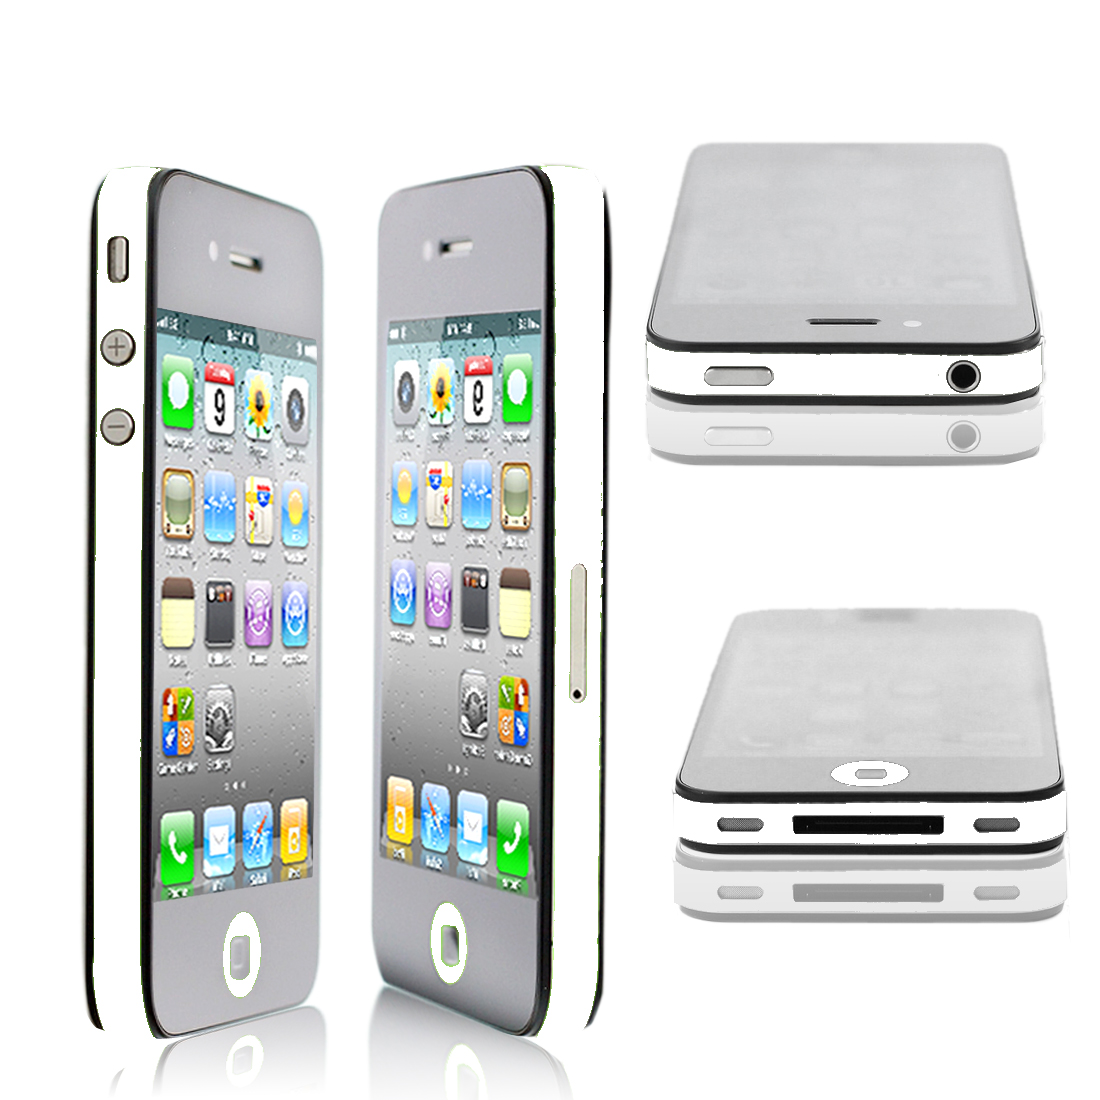 Bumper Edge Wrap Side Decal Skin Shield Sticker White for iPhone 4G 4S